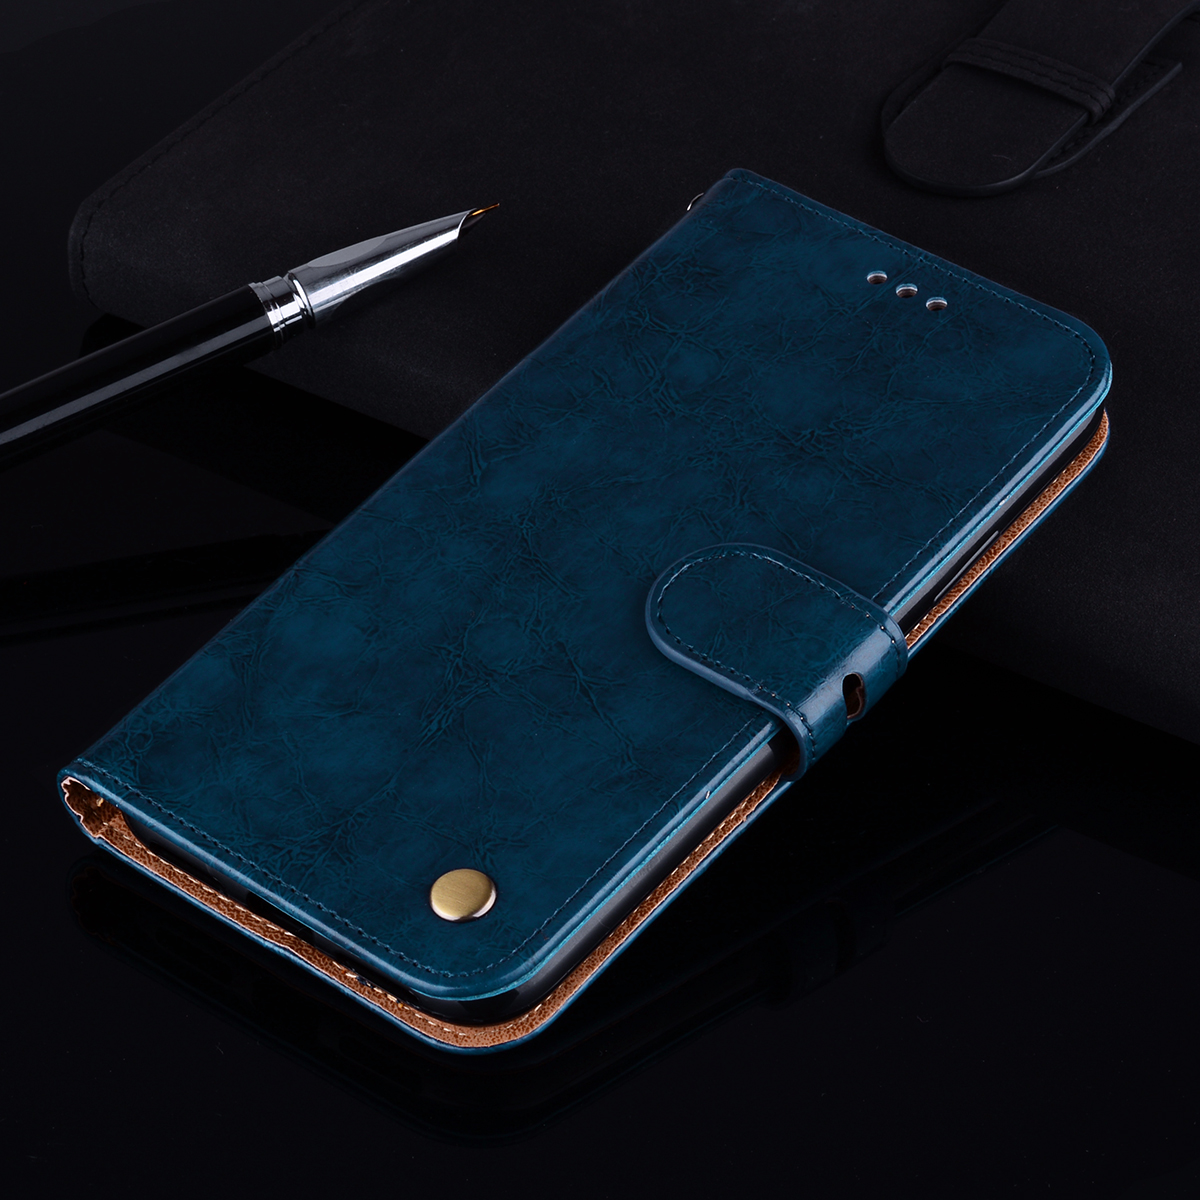 Leather Wallet Case For <font><b>Huawei</b></font> Y5 Prime 2018 <font><b>DRA</b></font>-<font><b>L21</b></font> Y5 2018 <font><b>DRA</b></font>-LX2 Phone Stand Flip Capa <font><b>Huawei</b></font> Y5 Lite <font><b>DRA</b></font>-LX5 Silicone Cover image